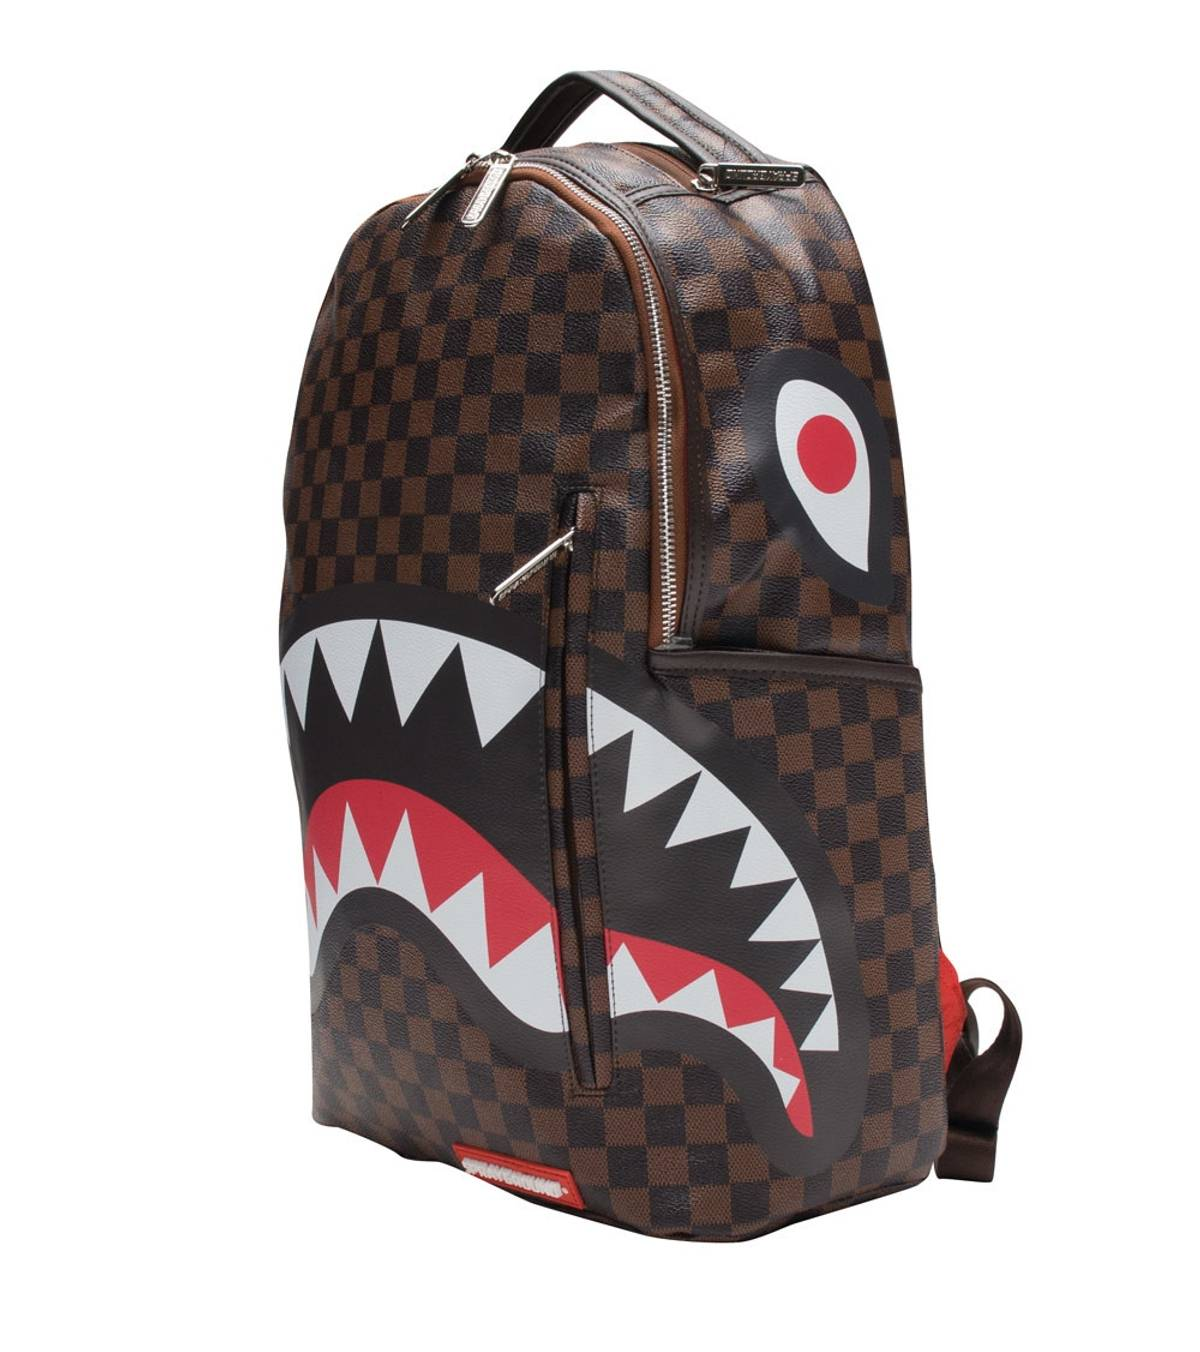 a6c27d01bc08 Sprayground LV Shark In Paris Backpack Size one size - Bags   Luggage for  Sale - Grailed